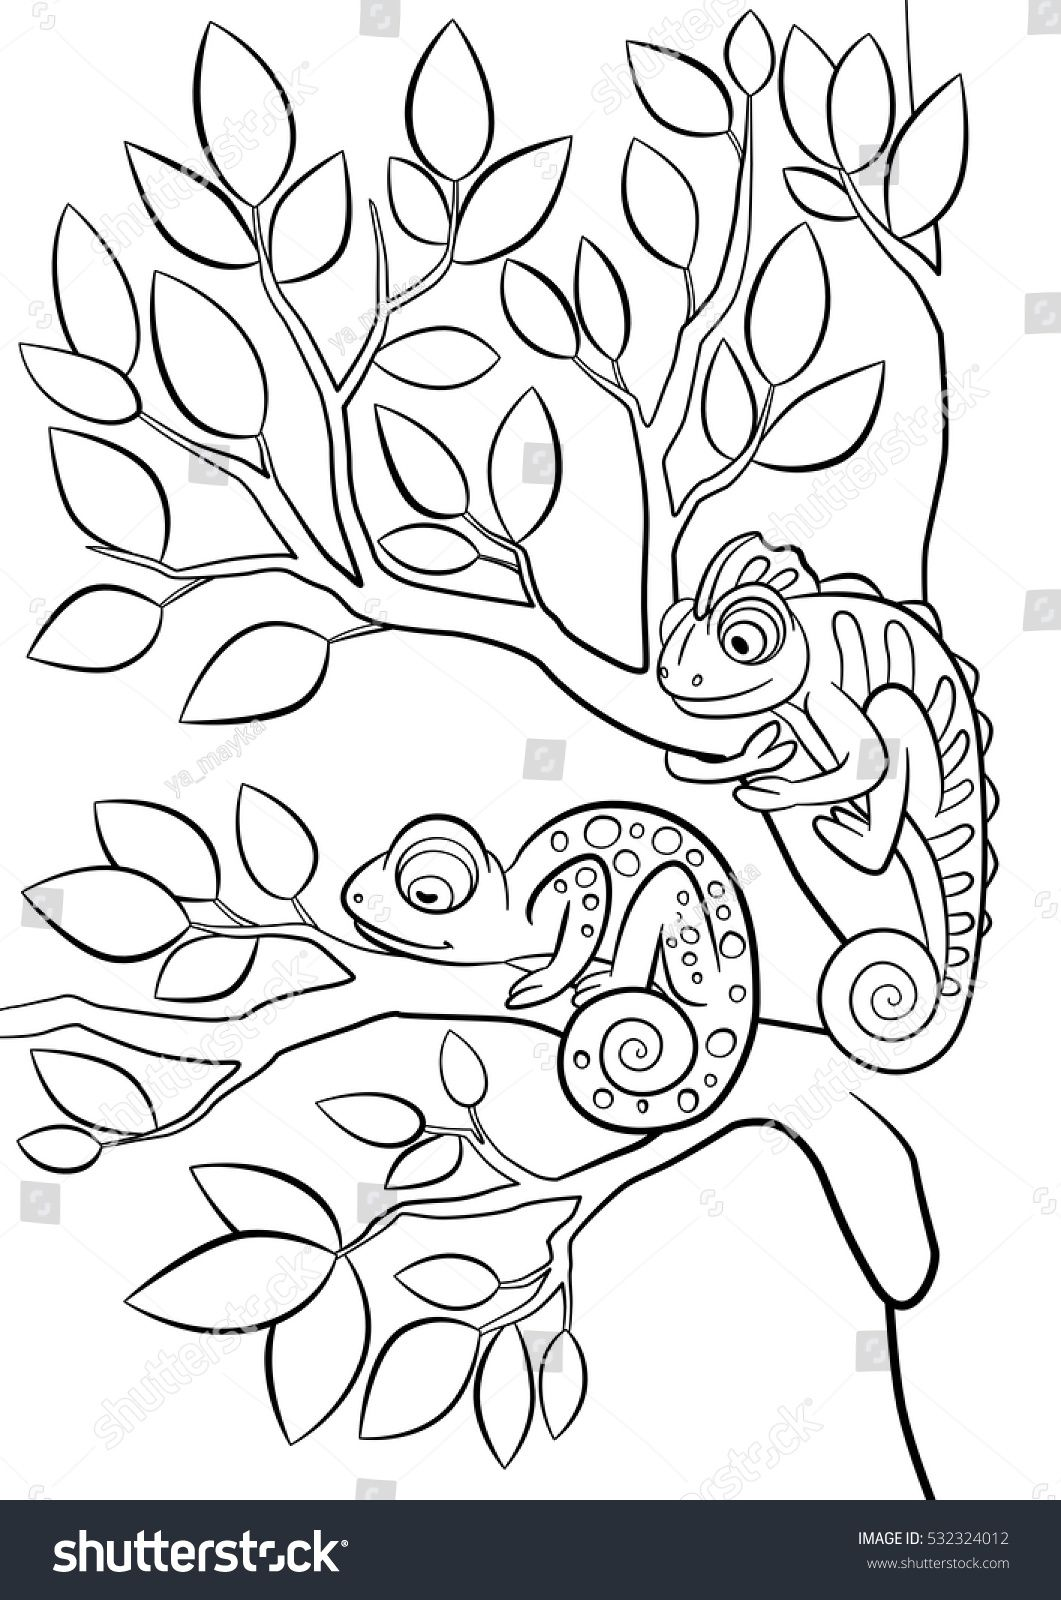 Coloring pages. Wild animals. Two little cute chameleon sits on the ...